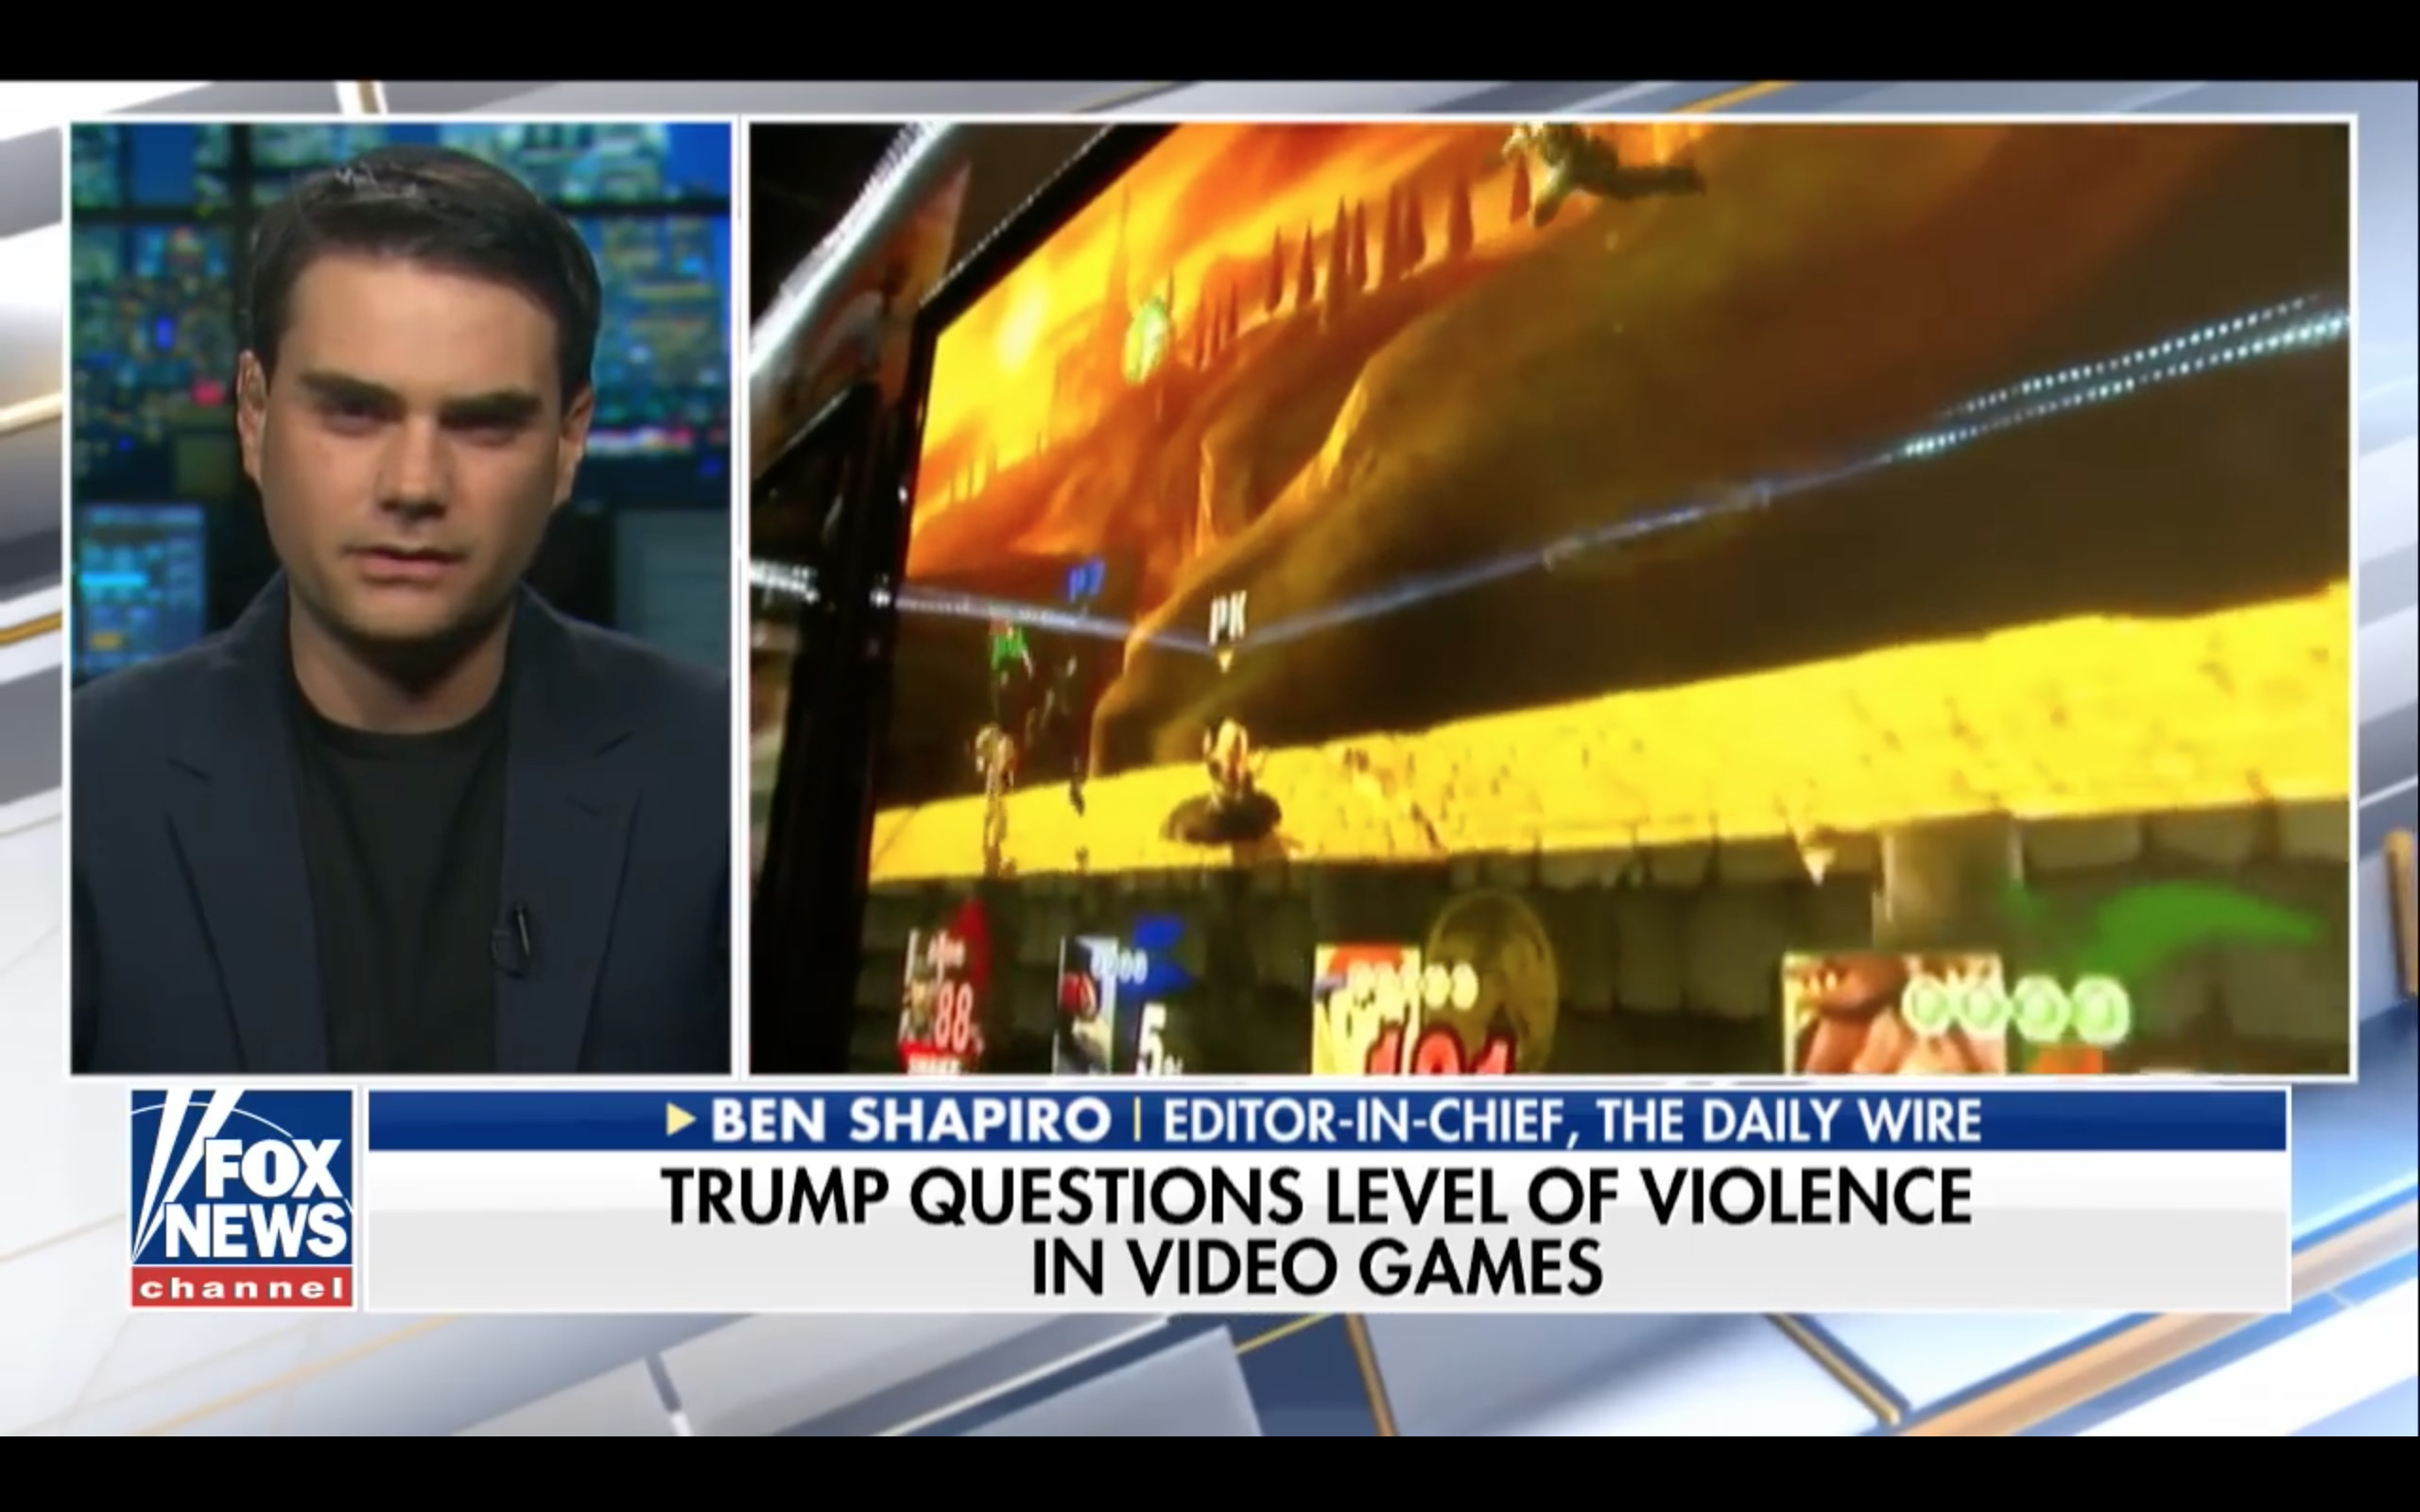 Fox News Thinks Super Smash Bros Causes Violence